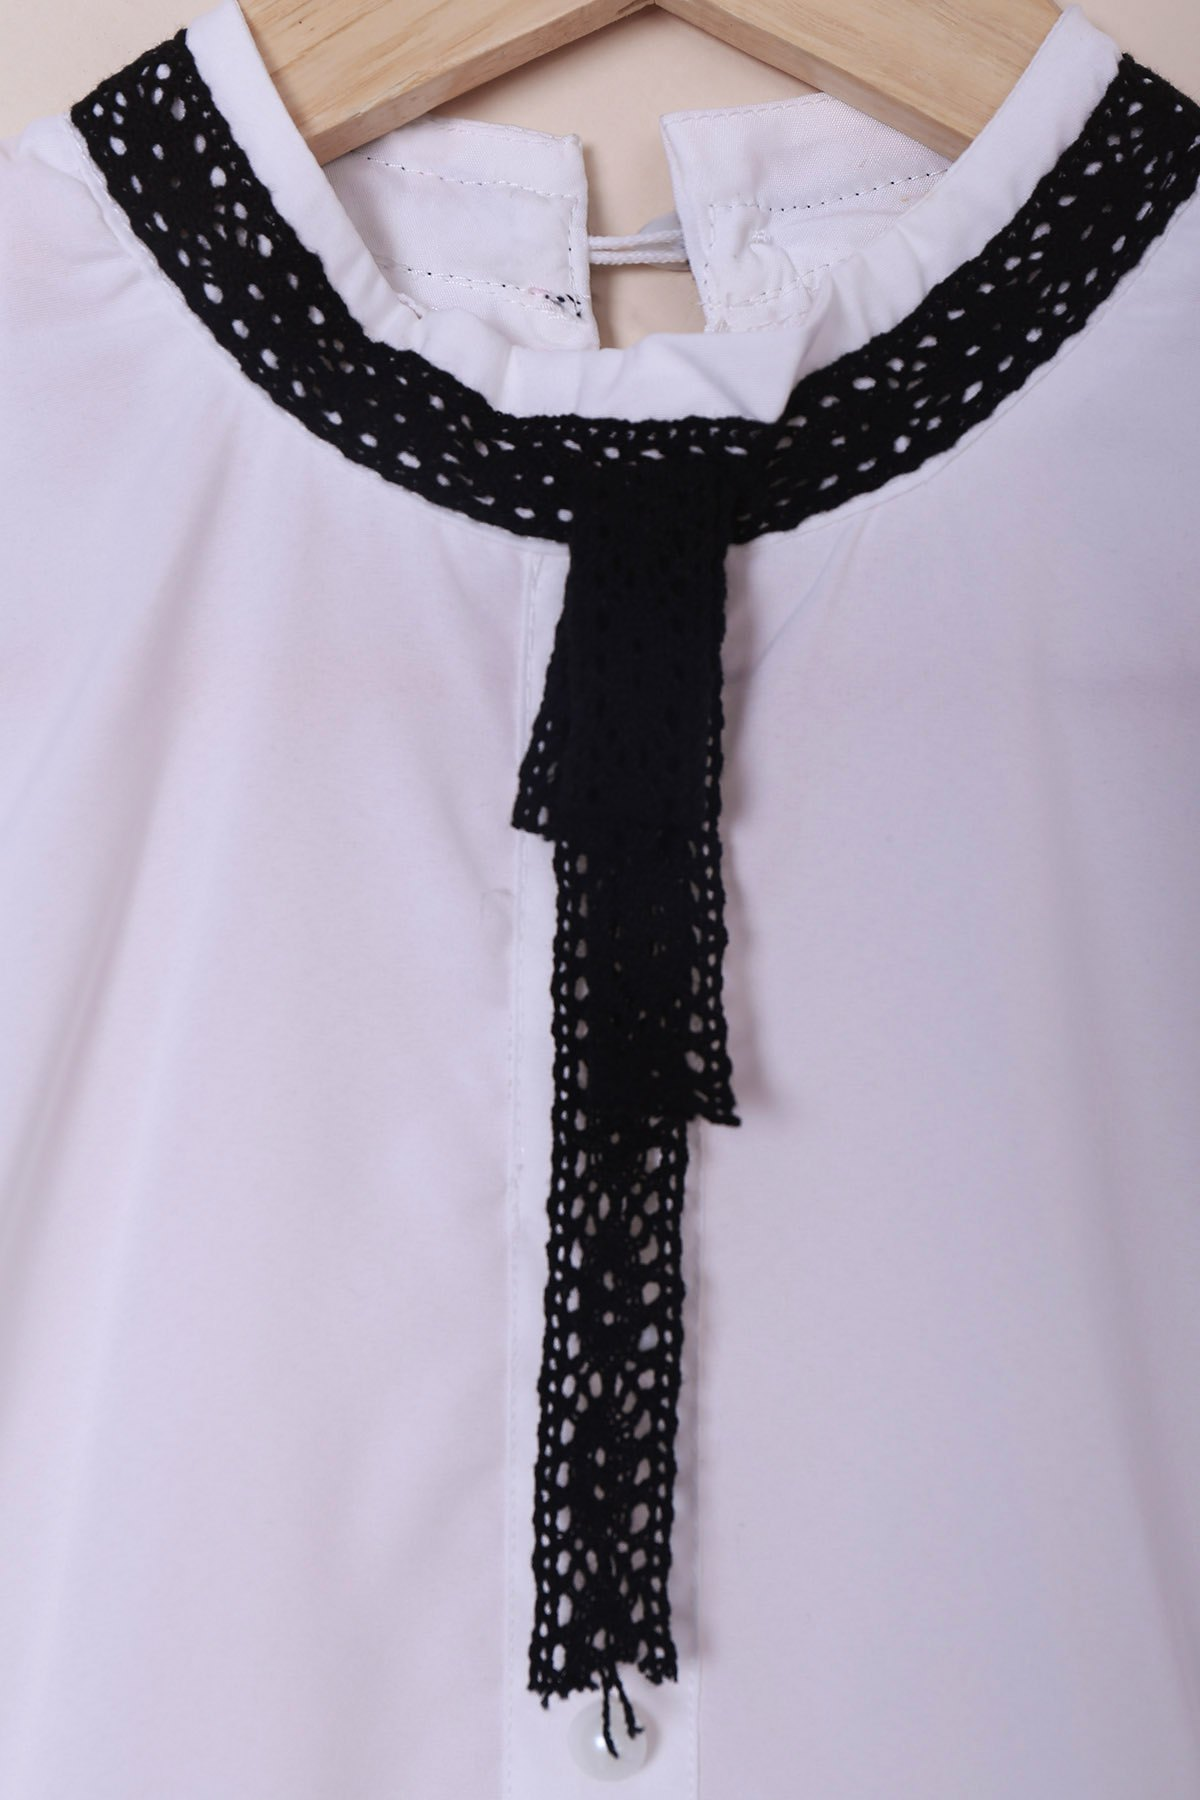 Stand Collar Dress Designs : White s vintage stand collar lace up ruched button design